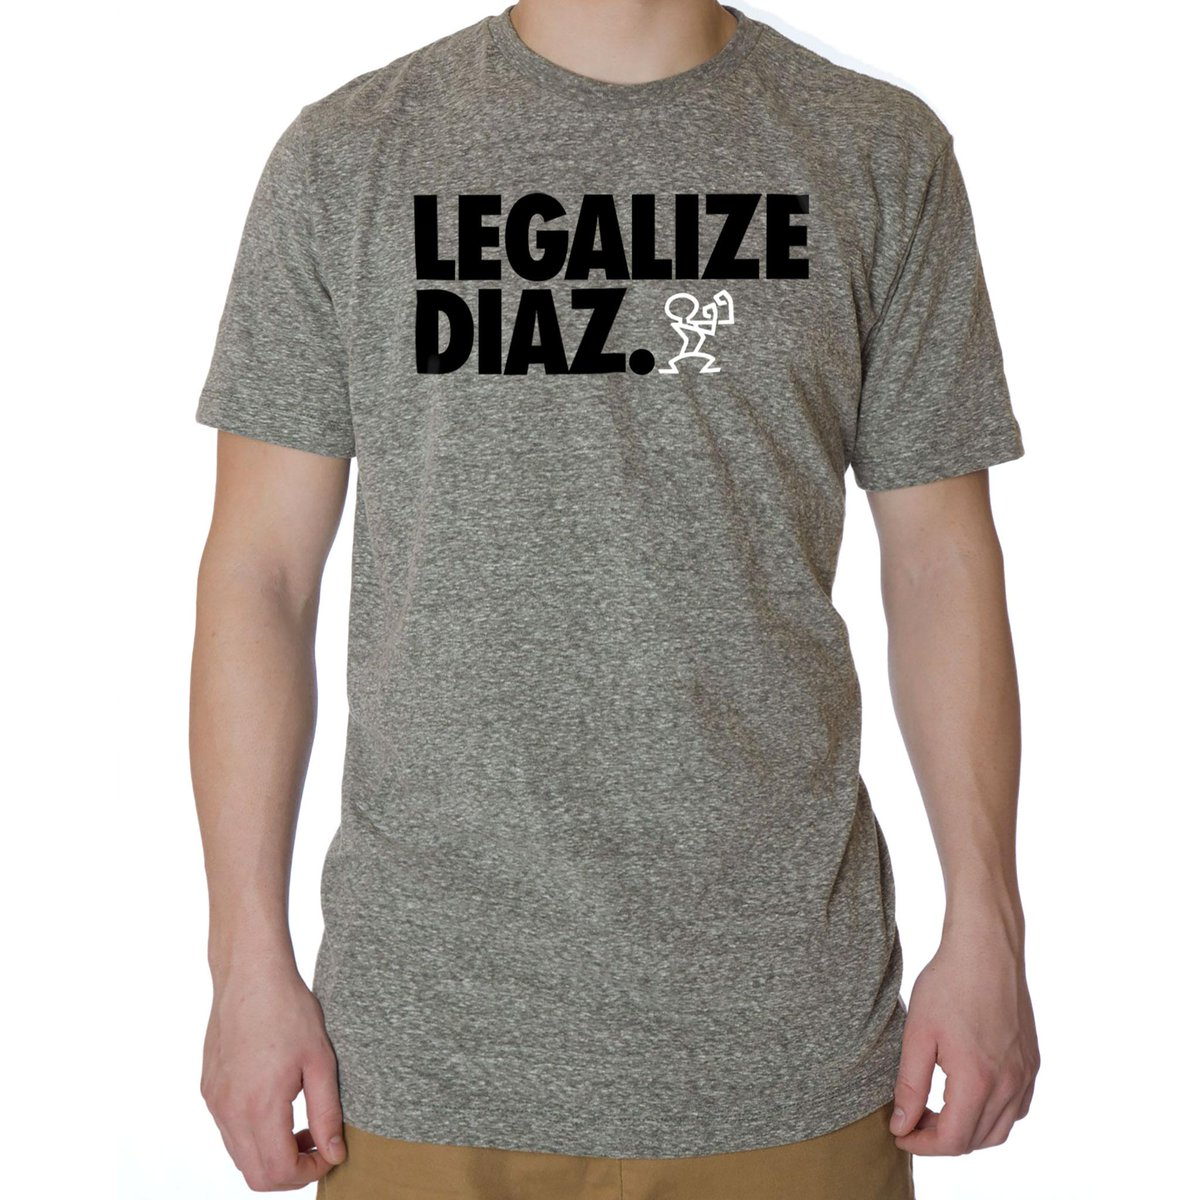 Legalize Diaz!! Show your support: http://t.co/geEHQMAEio http://t.co/o3UTiqxkzE